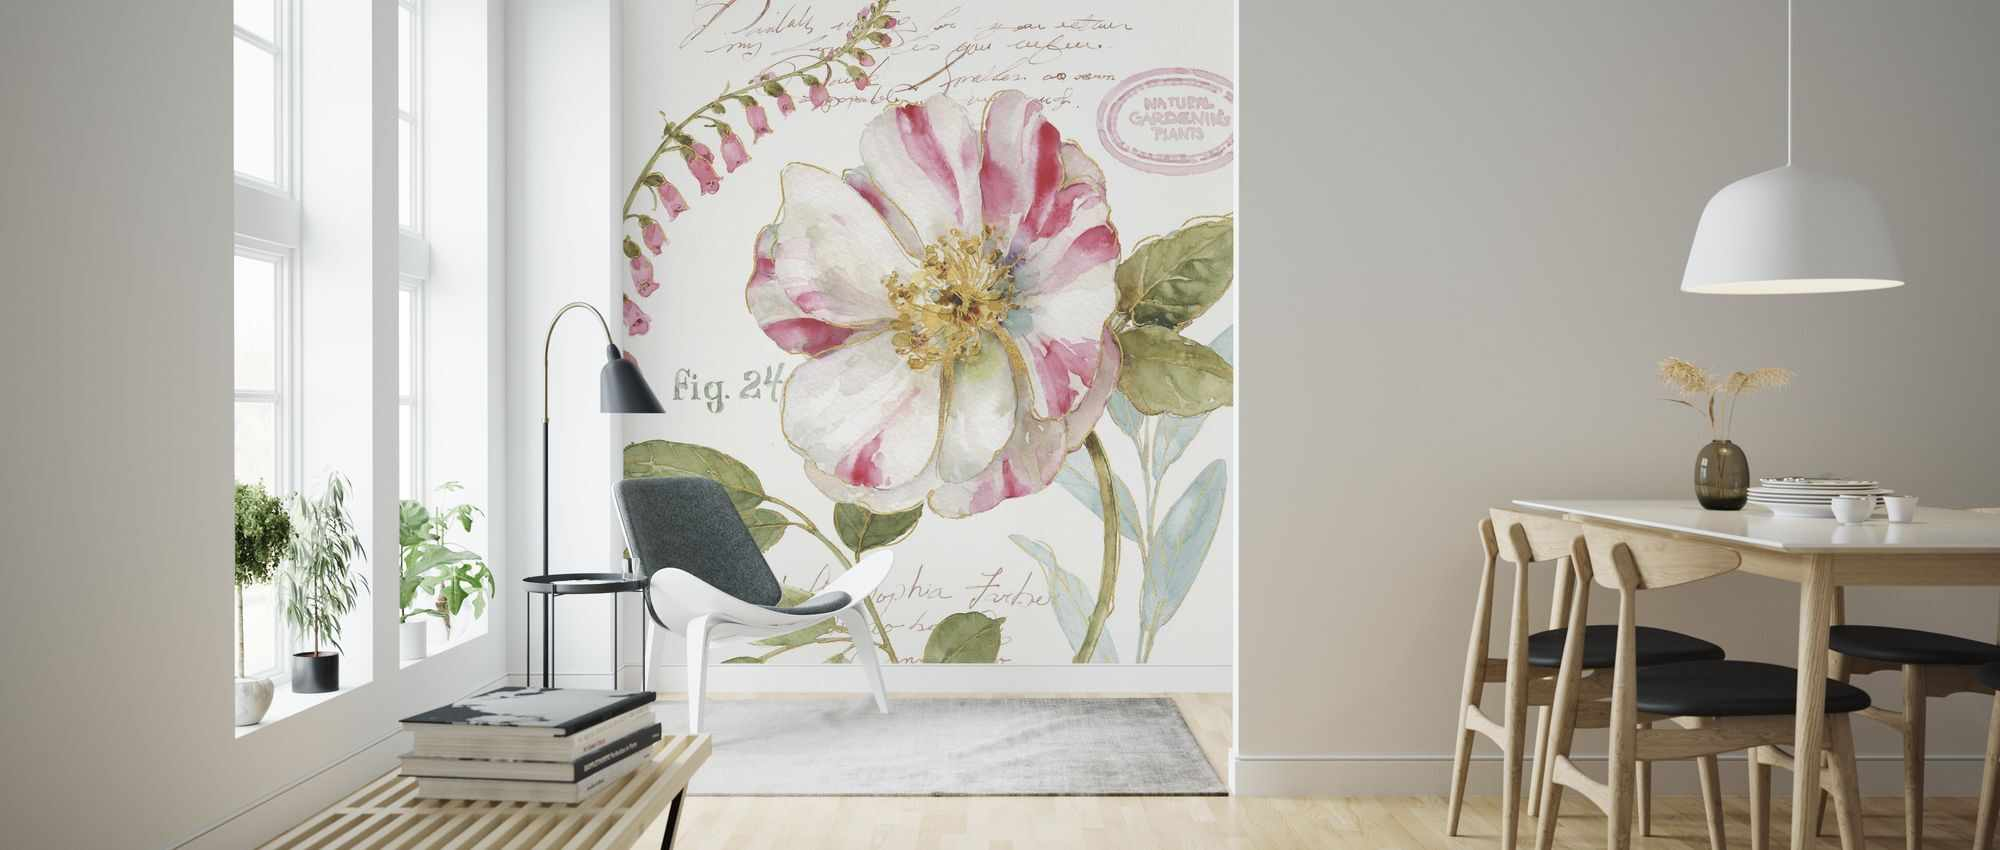 Fototapet Candy Cane Striped Flower personalizat, Photowall